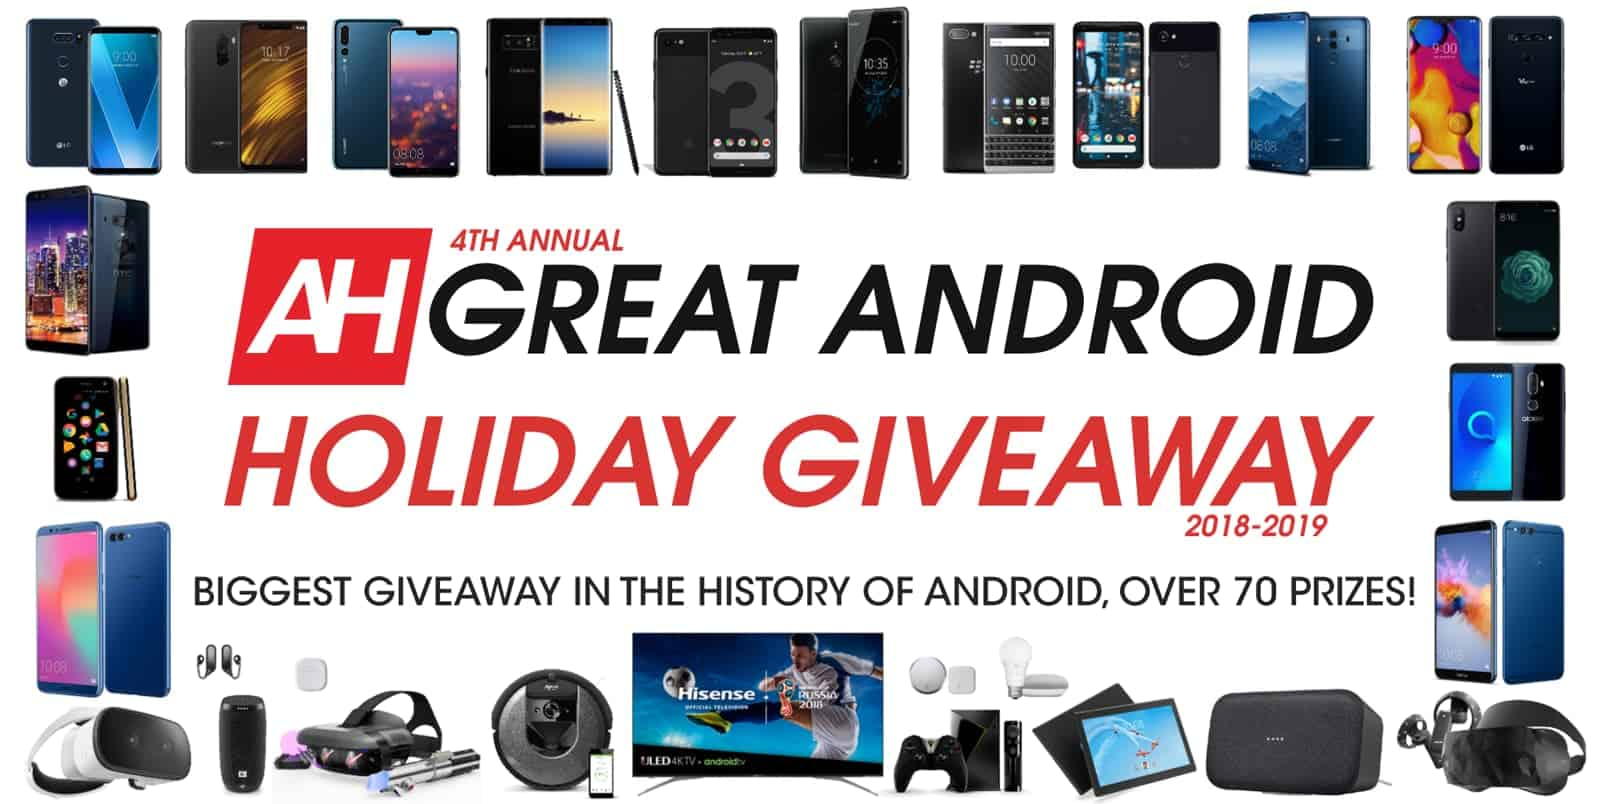 ANDROID HEADLINES GREAT ANDROID HOLIDAY GIVEAWAY 2 2018 2019 3